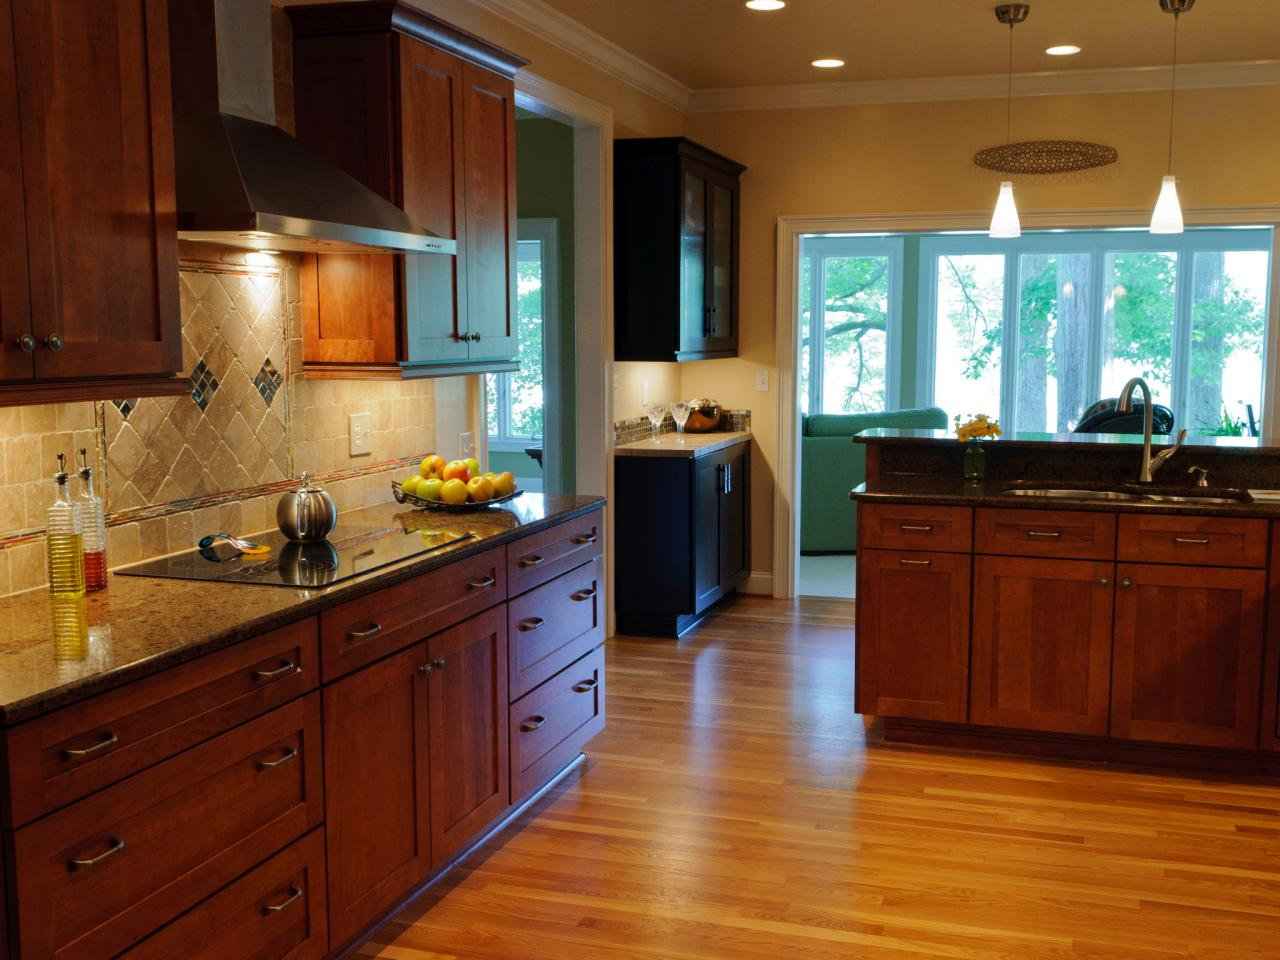 Stylish refinishing kitchen cabinets refinishing kitchen cabinet ideas nuxnyge